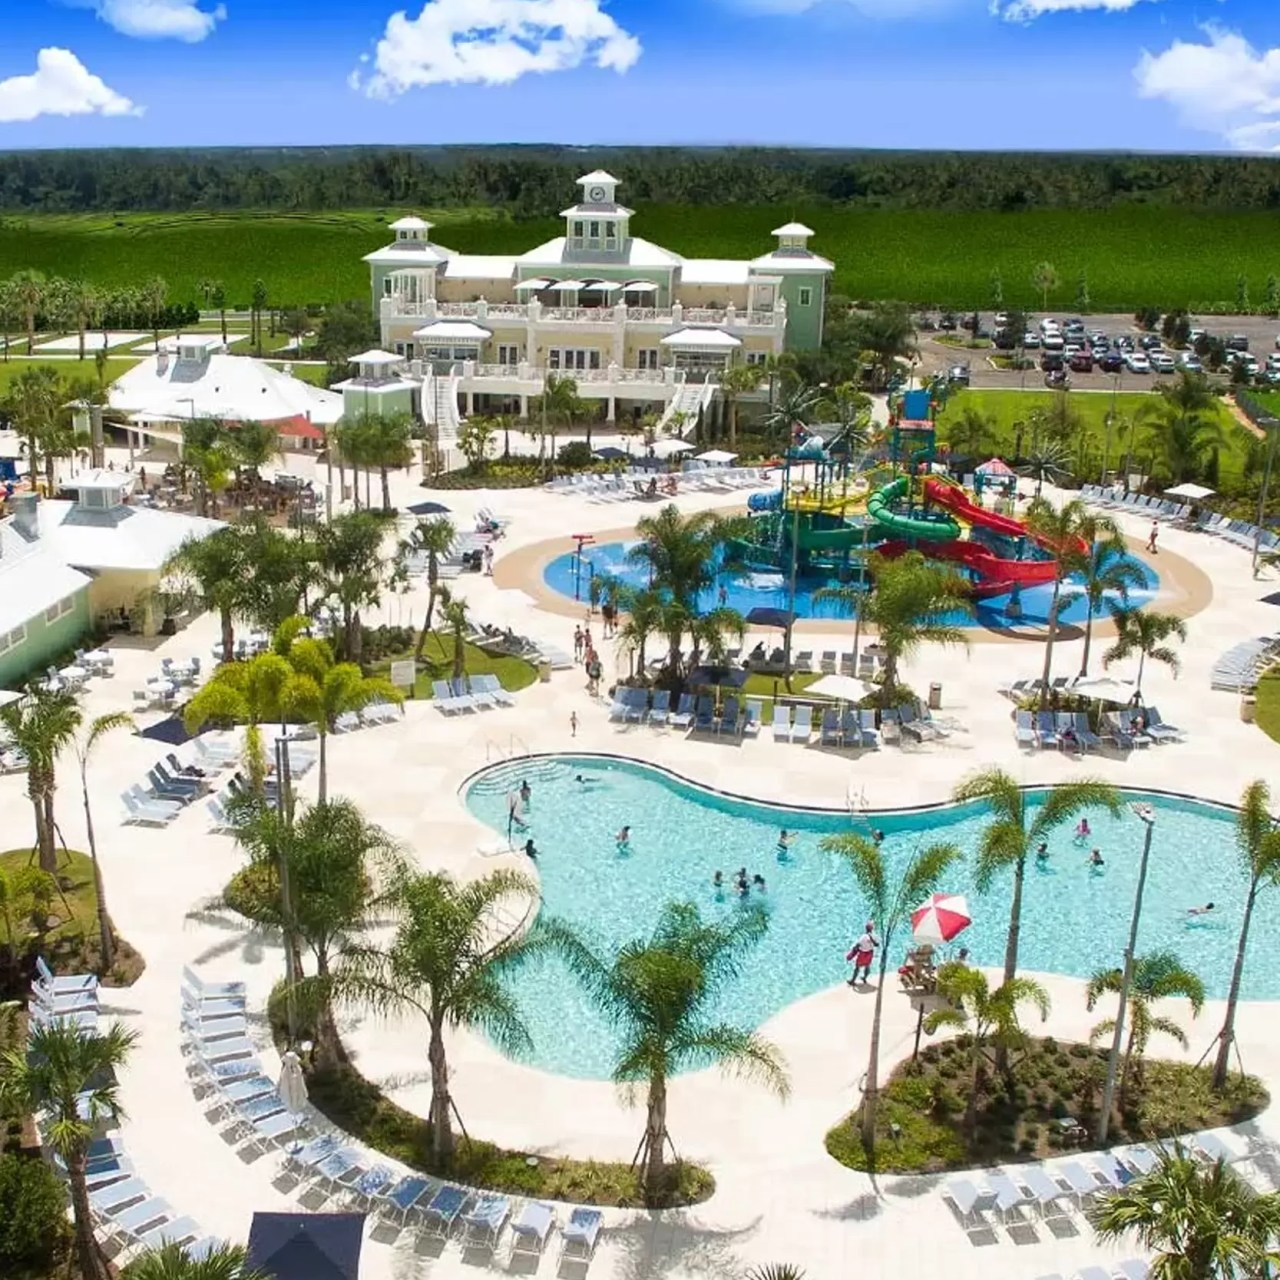 encore resort vacation homes waterpark Header